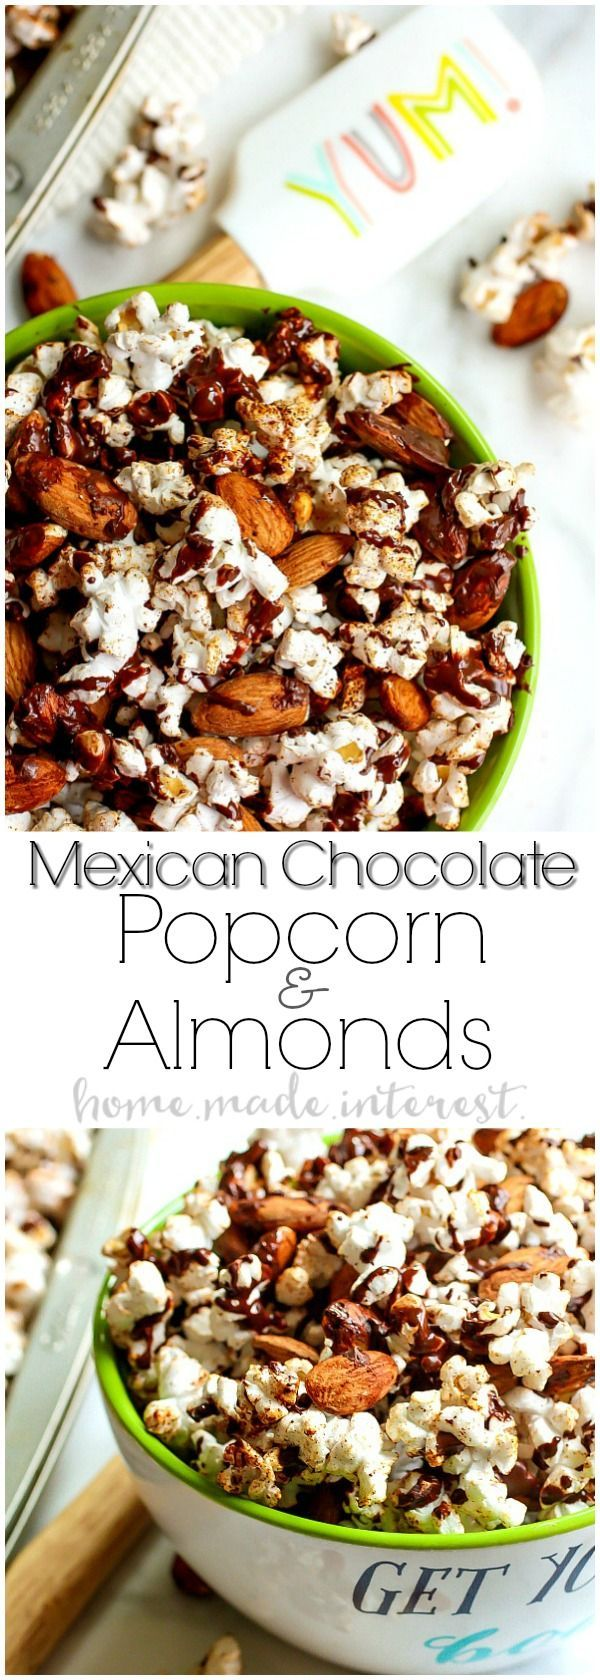 Mexican Chocolate Popcorn and Almonds | This sweet and crunchy Mexican Chocolate Popcorn and Almonds is a healthy snack that is easy to make. A blend of spices and chocolate gives this Mexican Chocolate Popcorn and Almonds a sweet flavor with a little bit of a kick and the light popcorn and almonds are healthy snack foods that taste great! #CelebrateAlmonds #ad @almonds